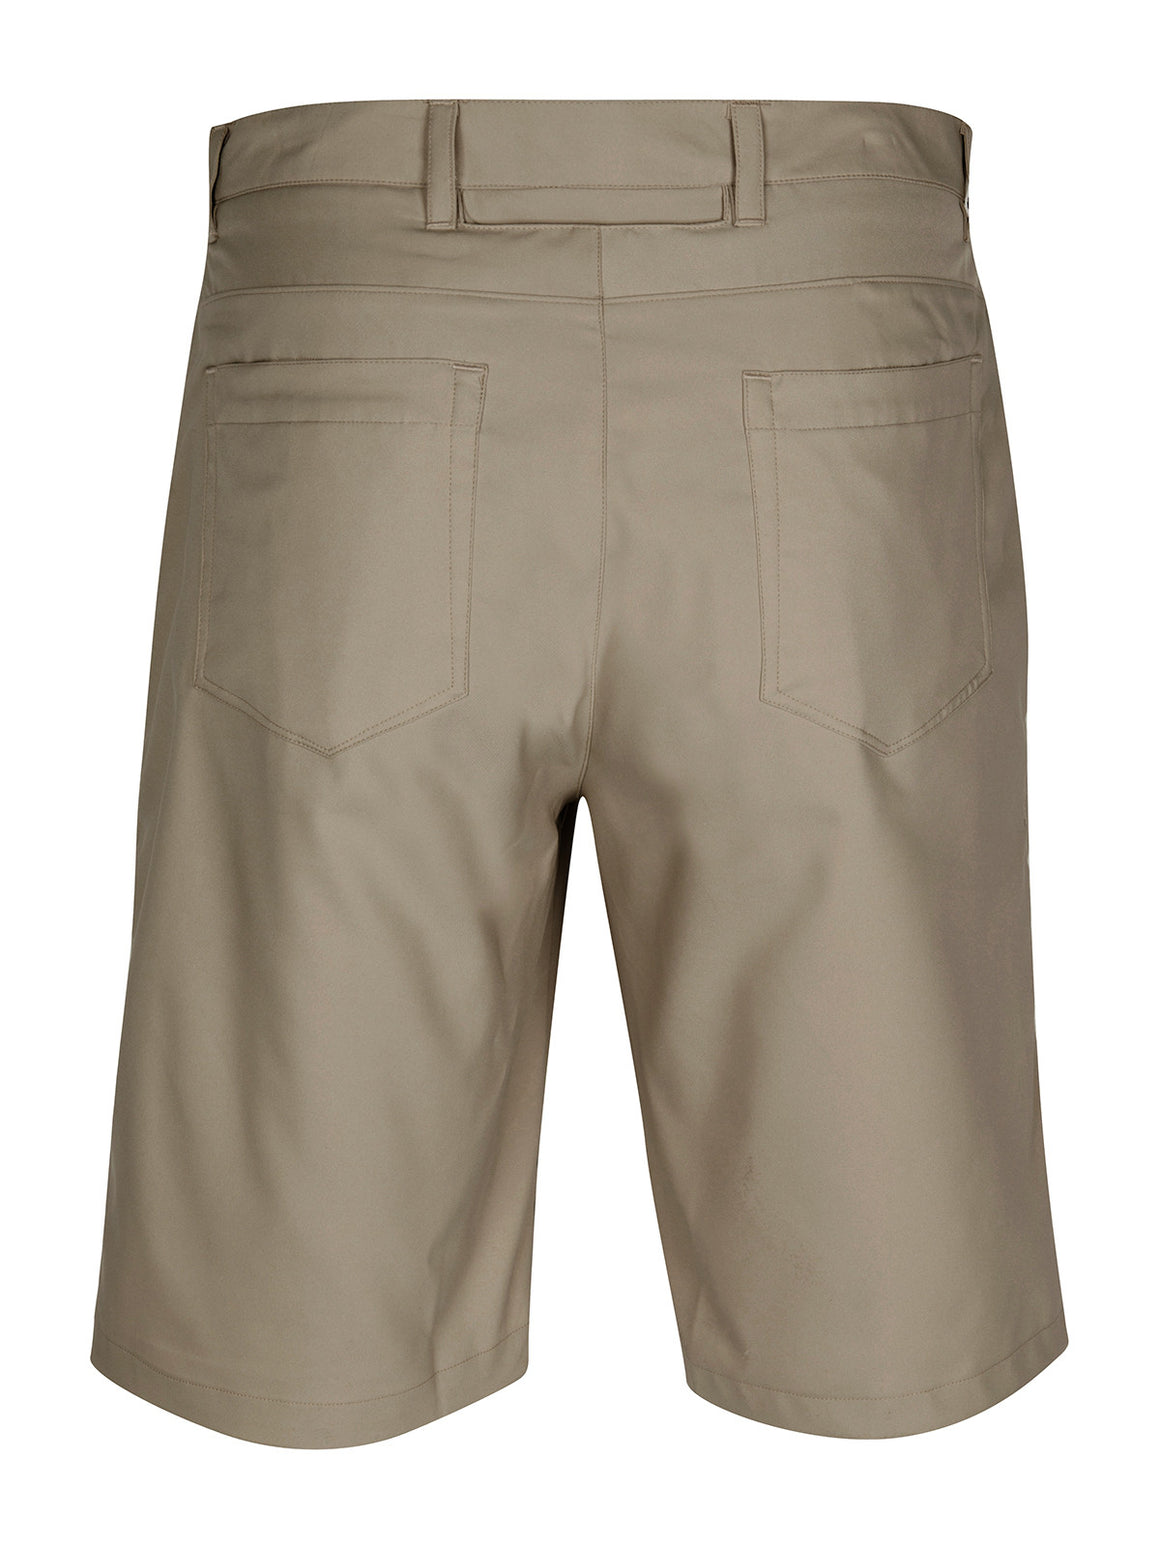 Player Short - Dark Taupe